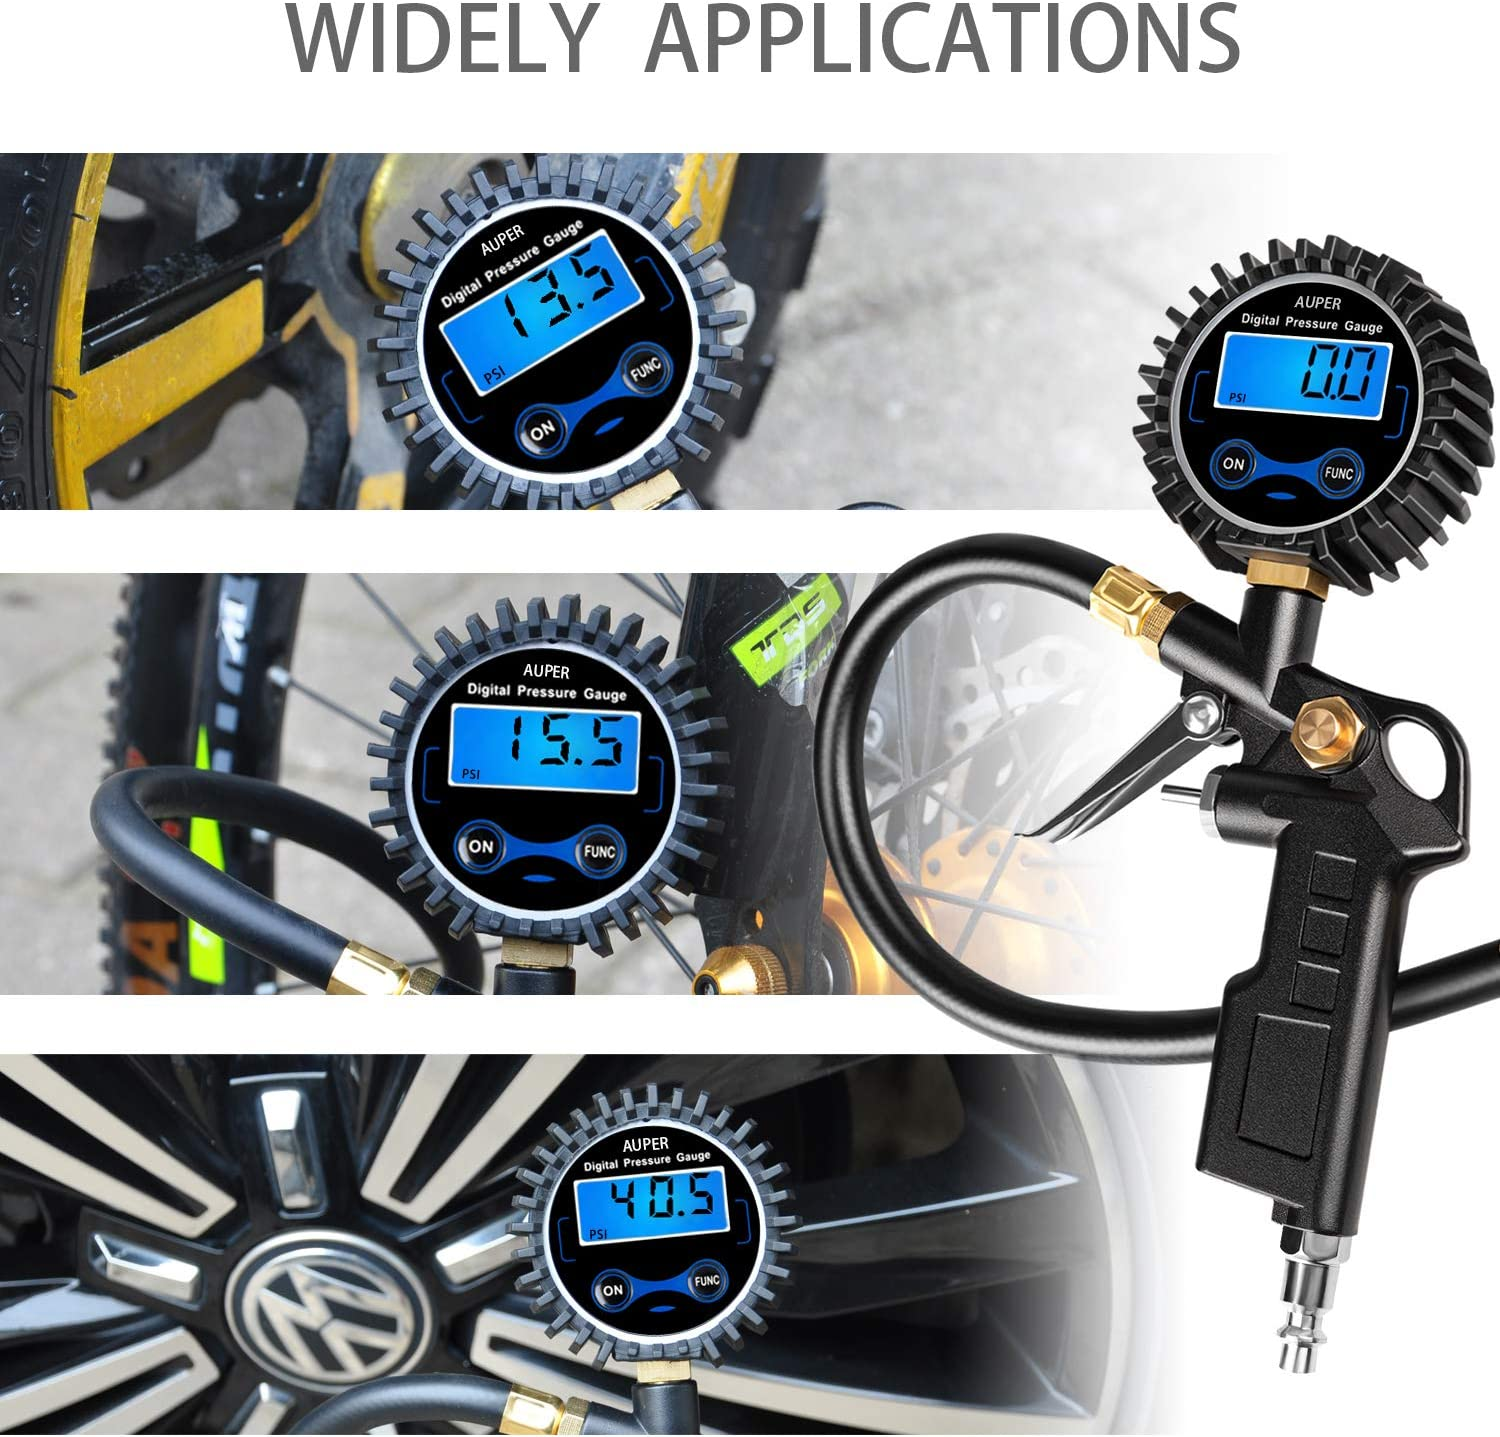 AUPER Digital Tire Inflator with Pressure Gauge Inflate and Deflate 3 in 1 Multifunction with Many Tire Accessories Check 250 PSI High Accurate Heavy Duty Air Chuck and Compressor Accessories